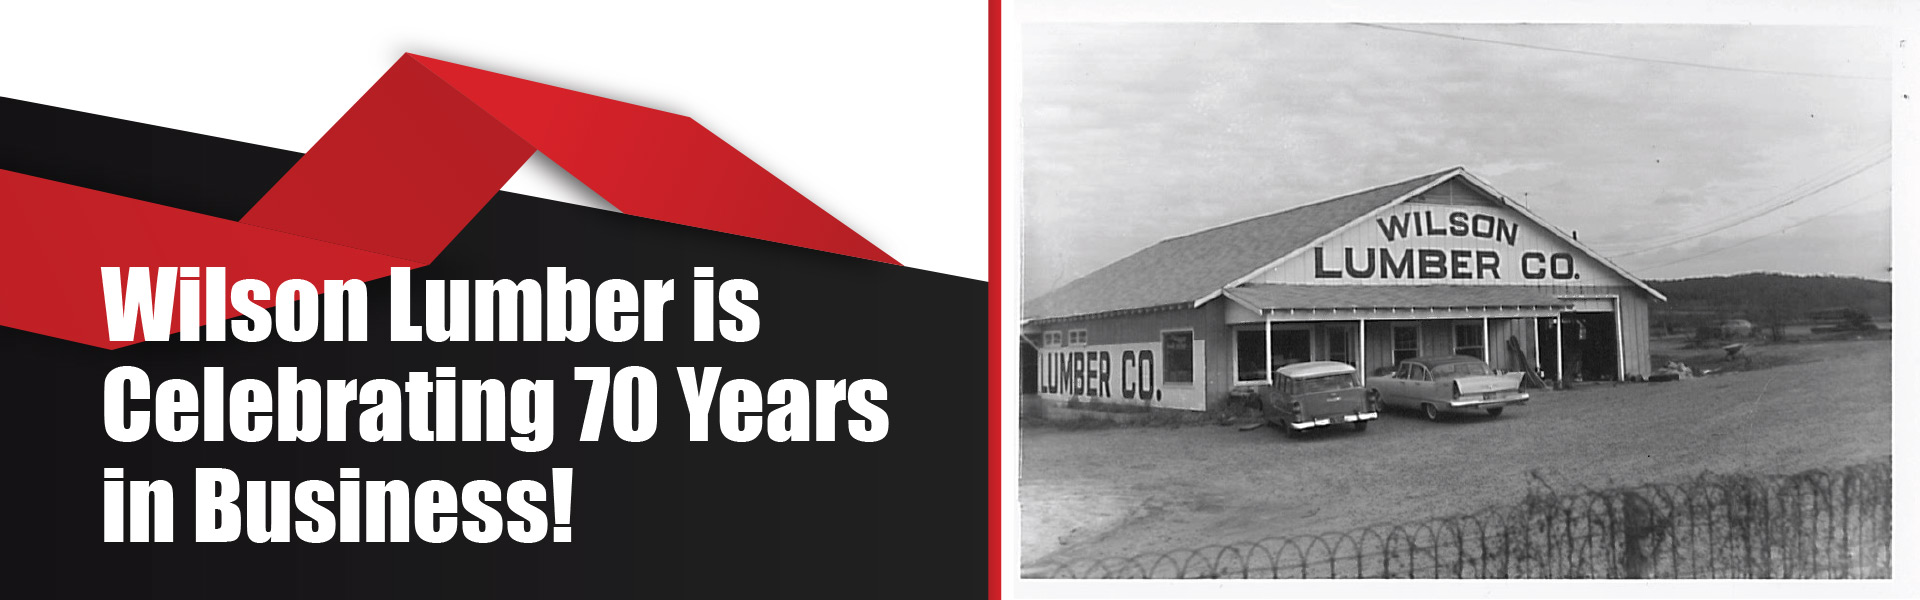 Wilson Lumber is celebrating 70 years in business! - Photo fo first Wilson Lumber Company